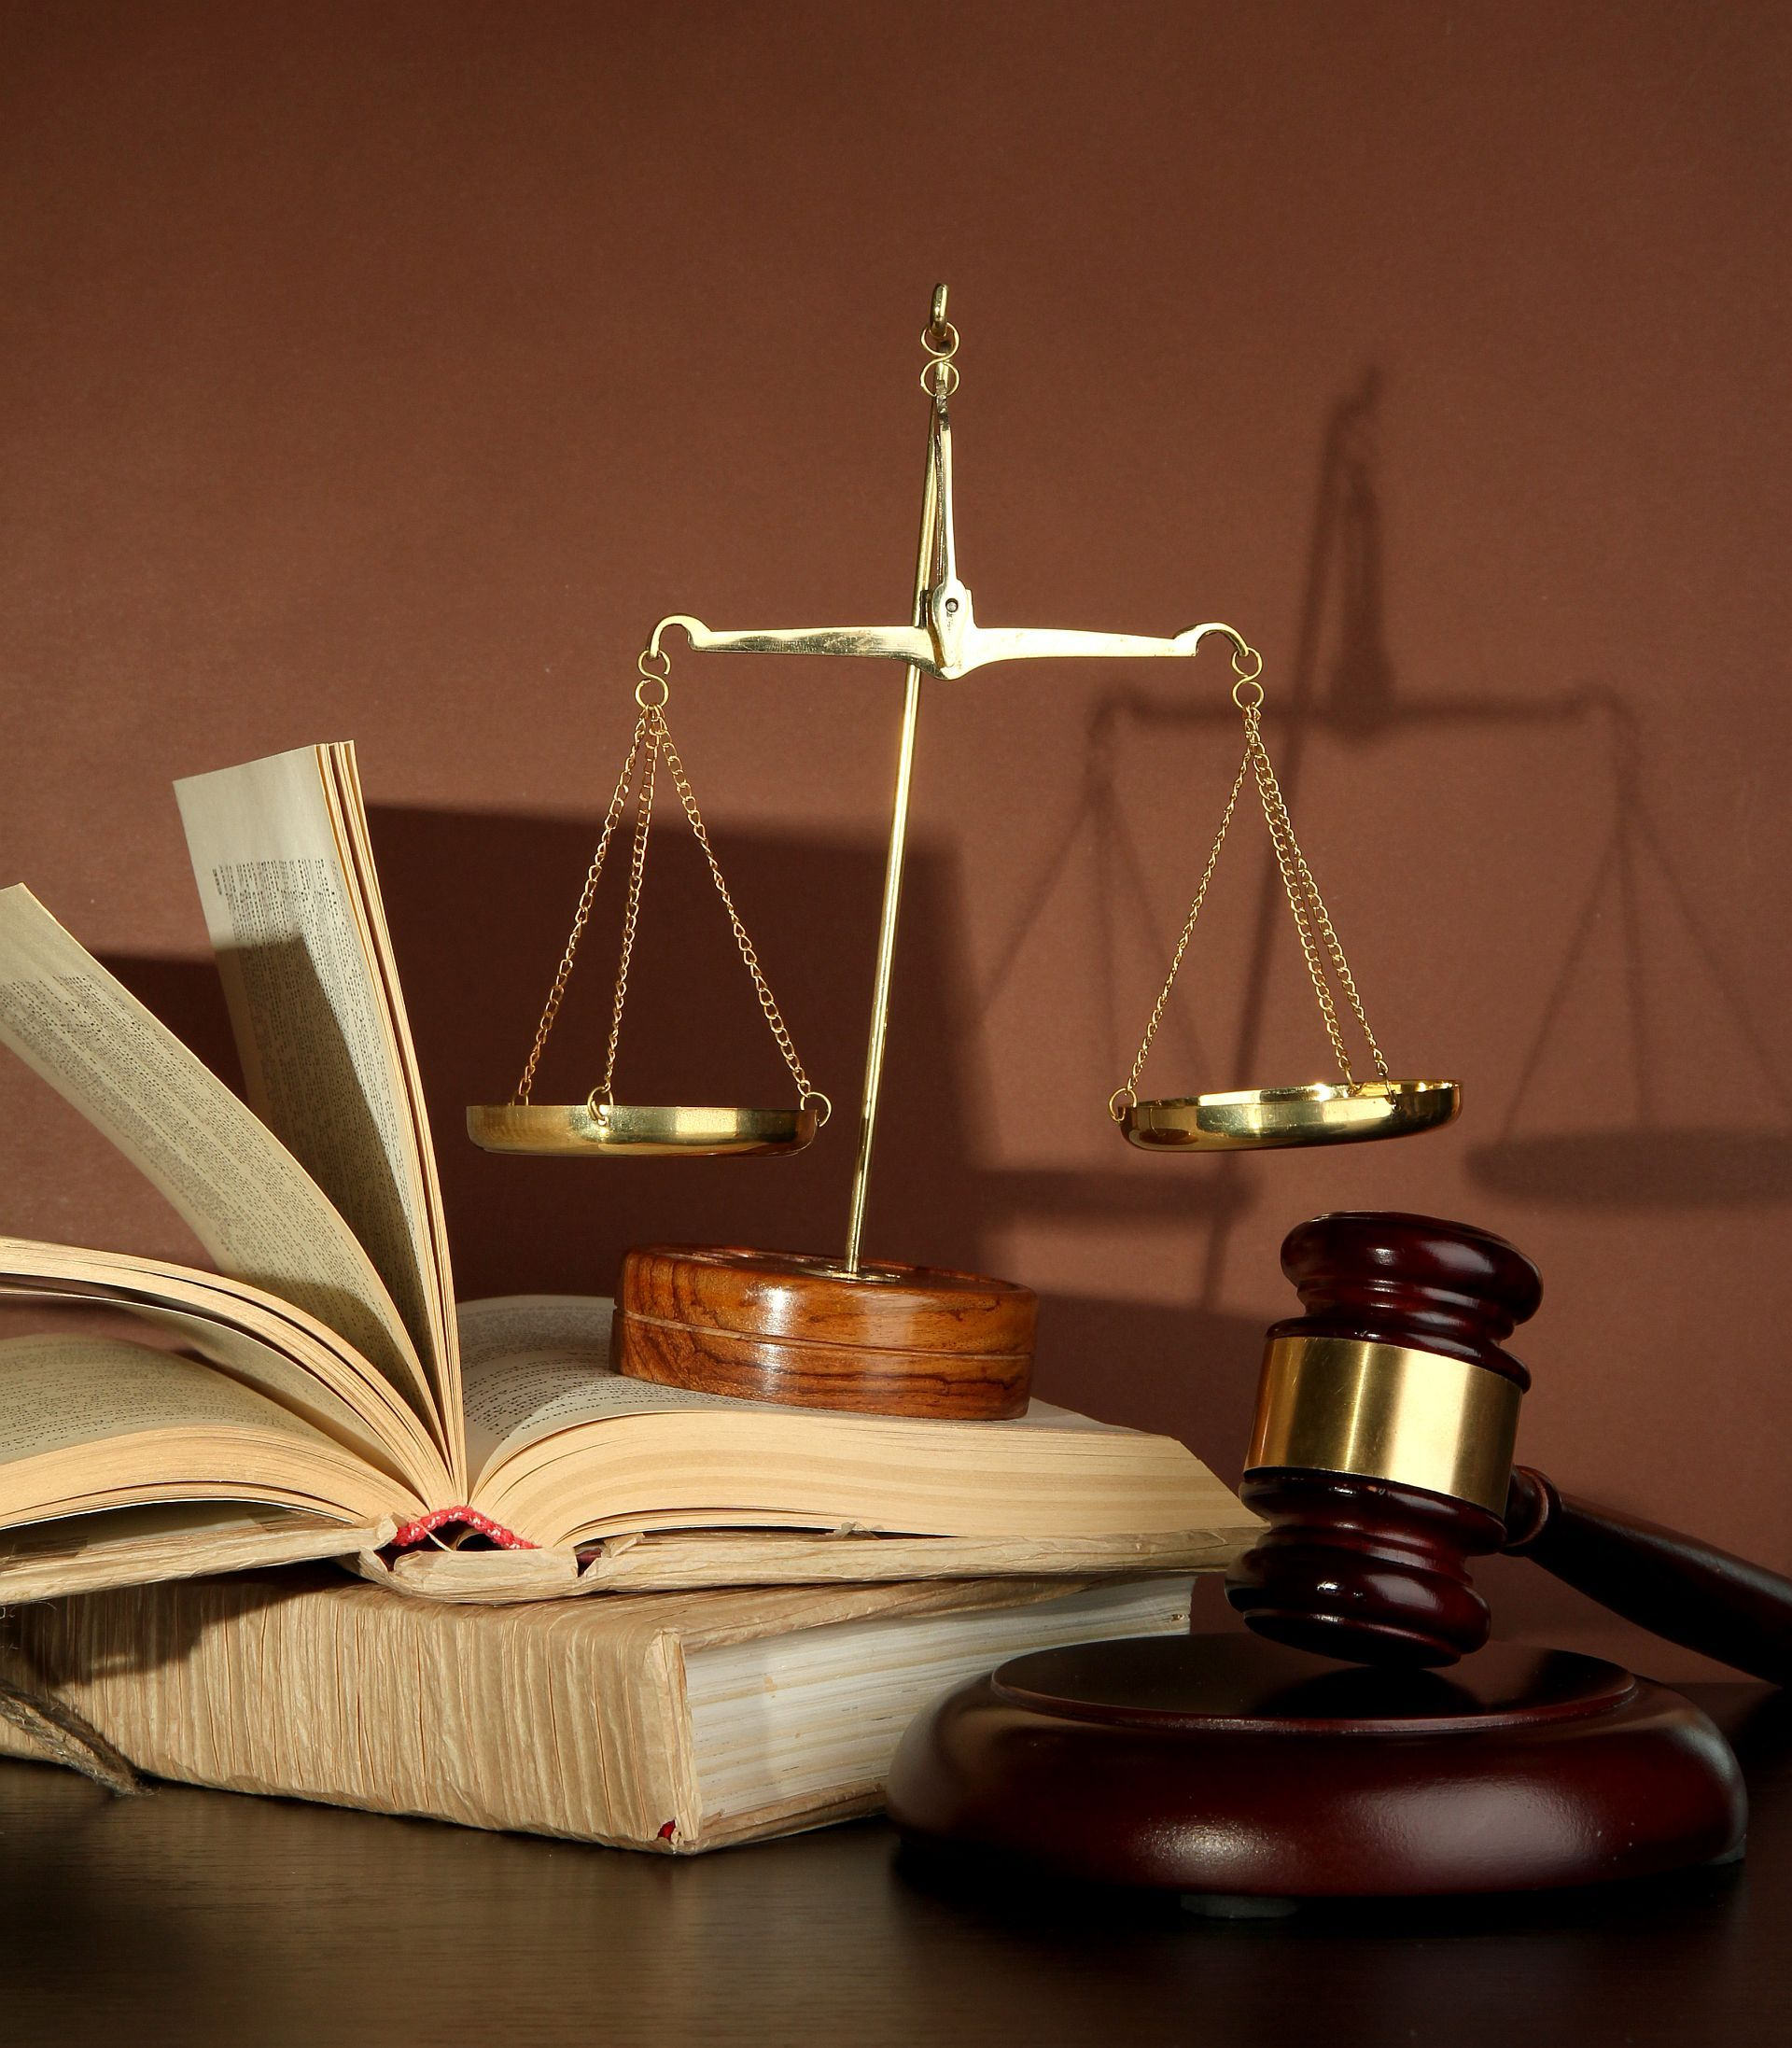 Law and Justice Wallpapers - Top Free Law and Justice Backgrounds -  WallpaperAccess